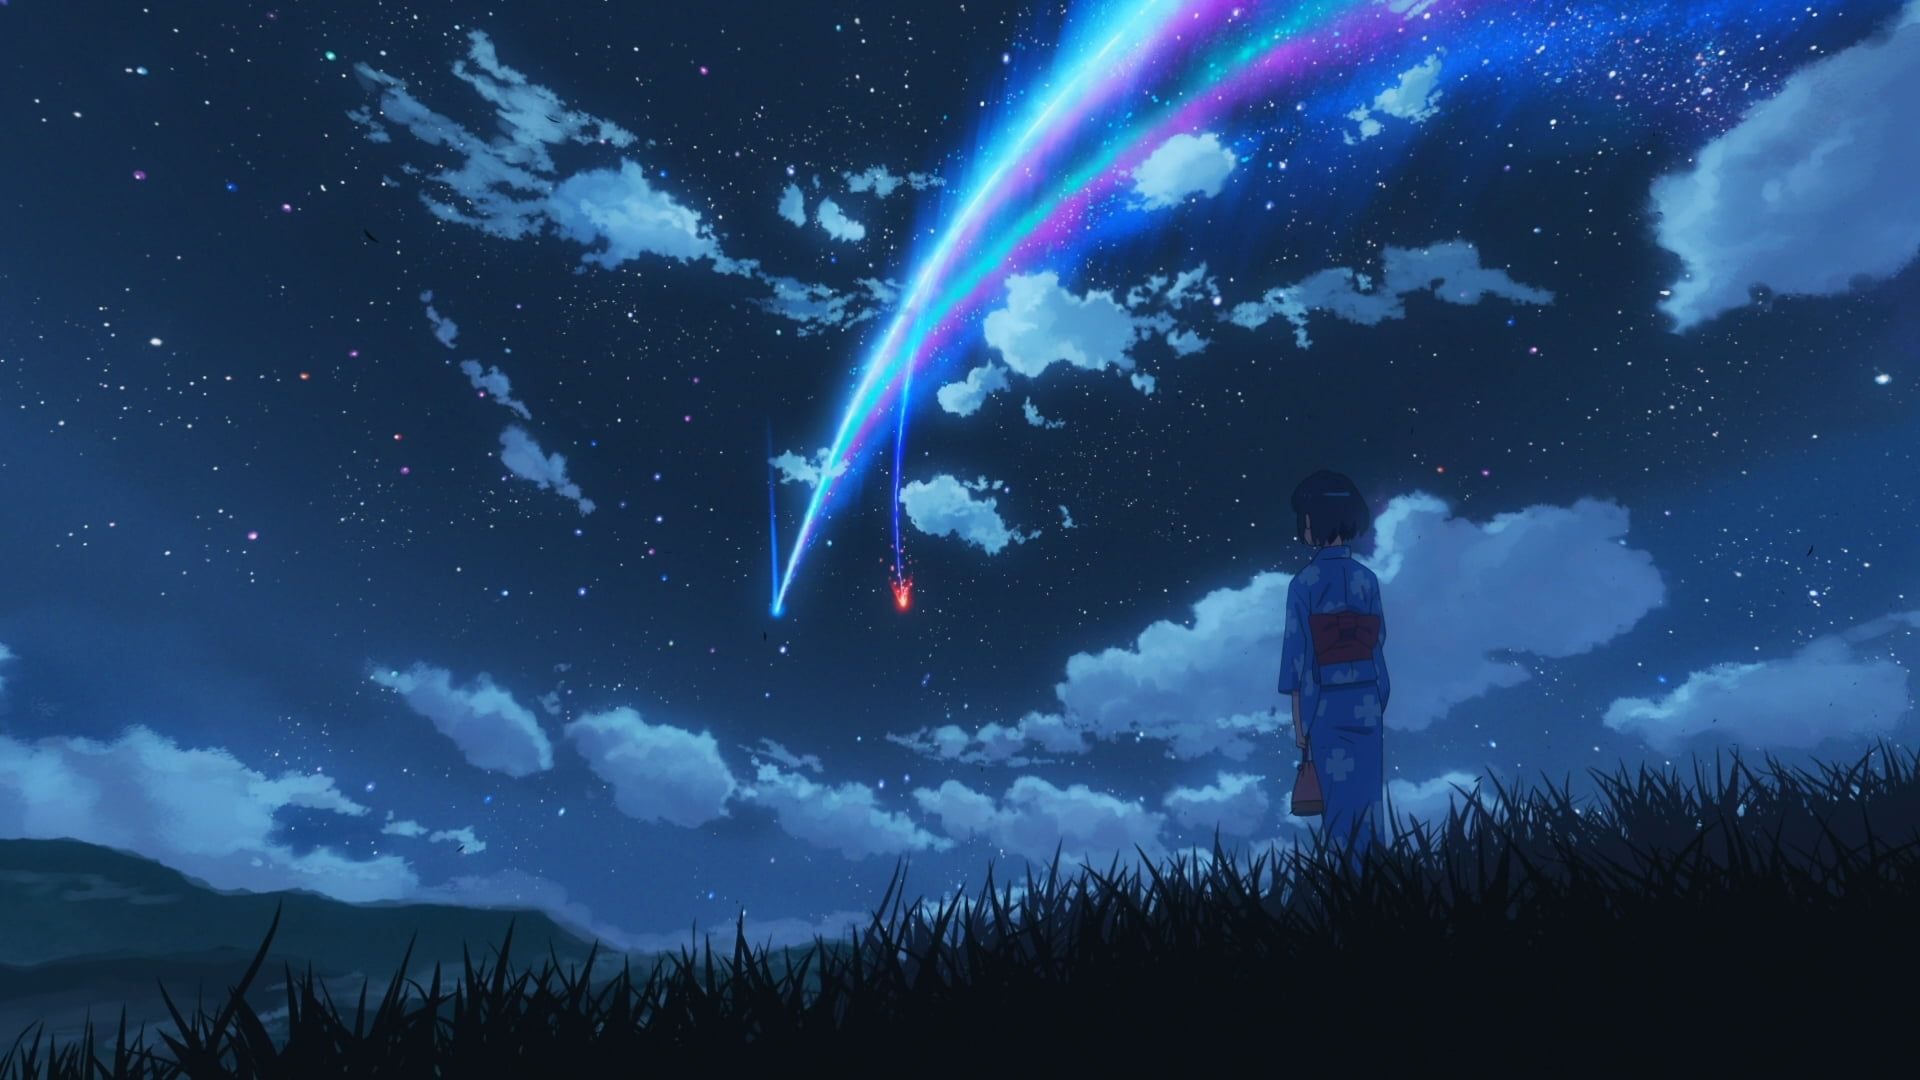 Your Name anime movie scene Kimi no Na Wa Makoto Shinkai